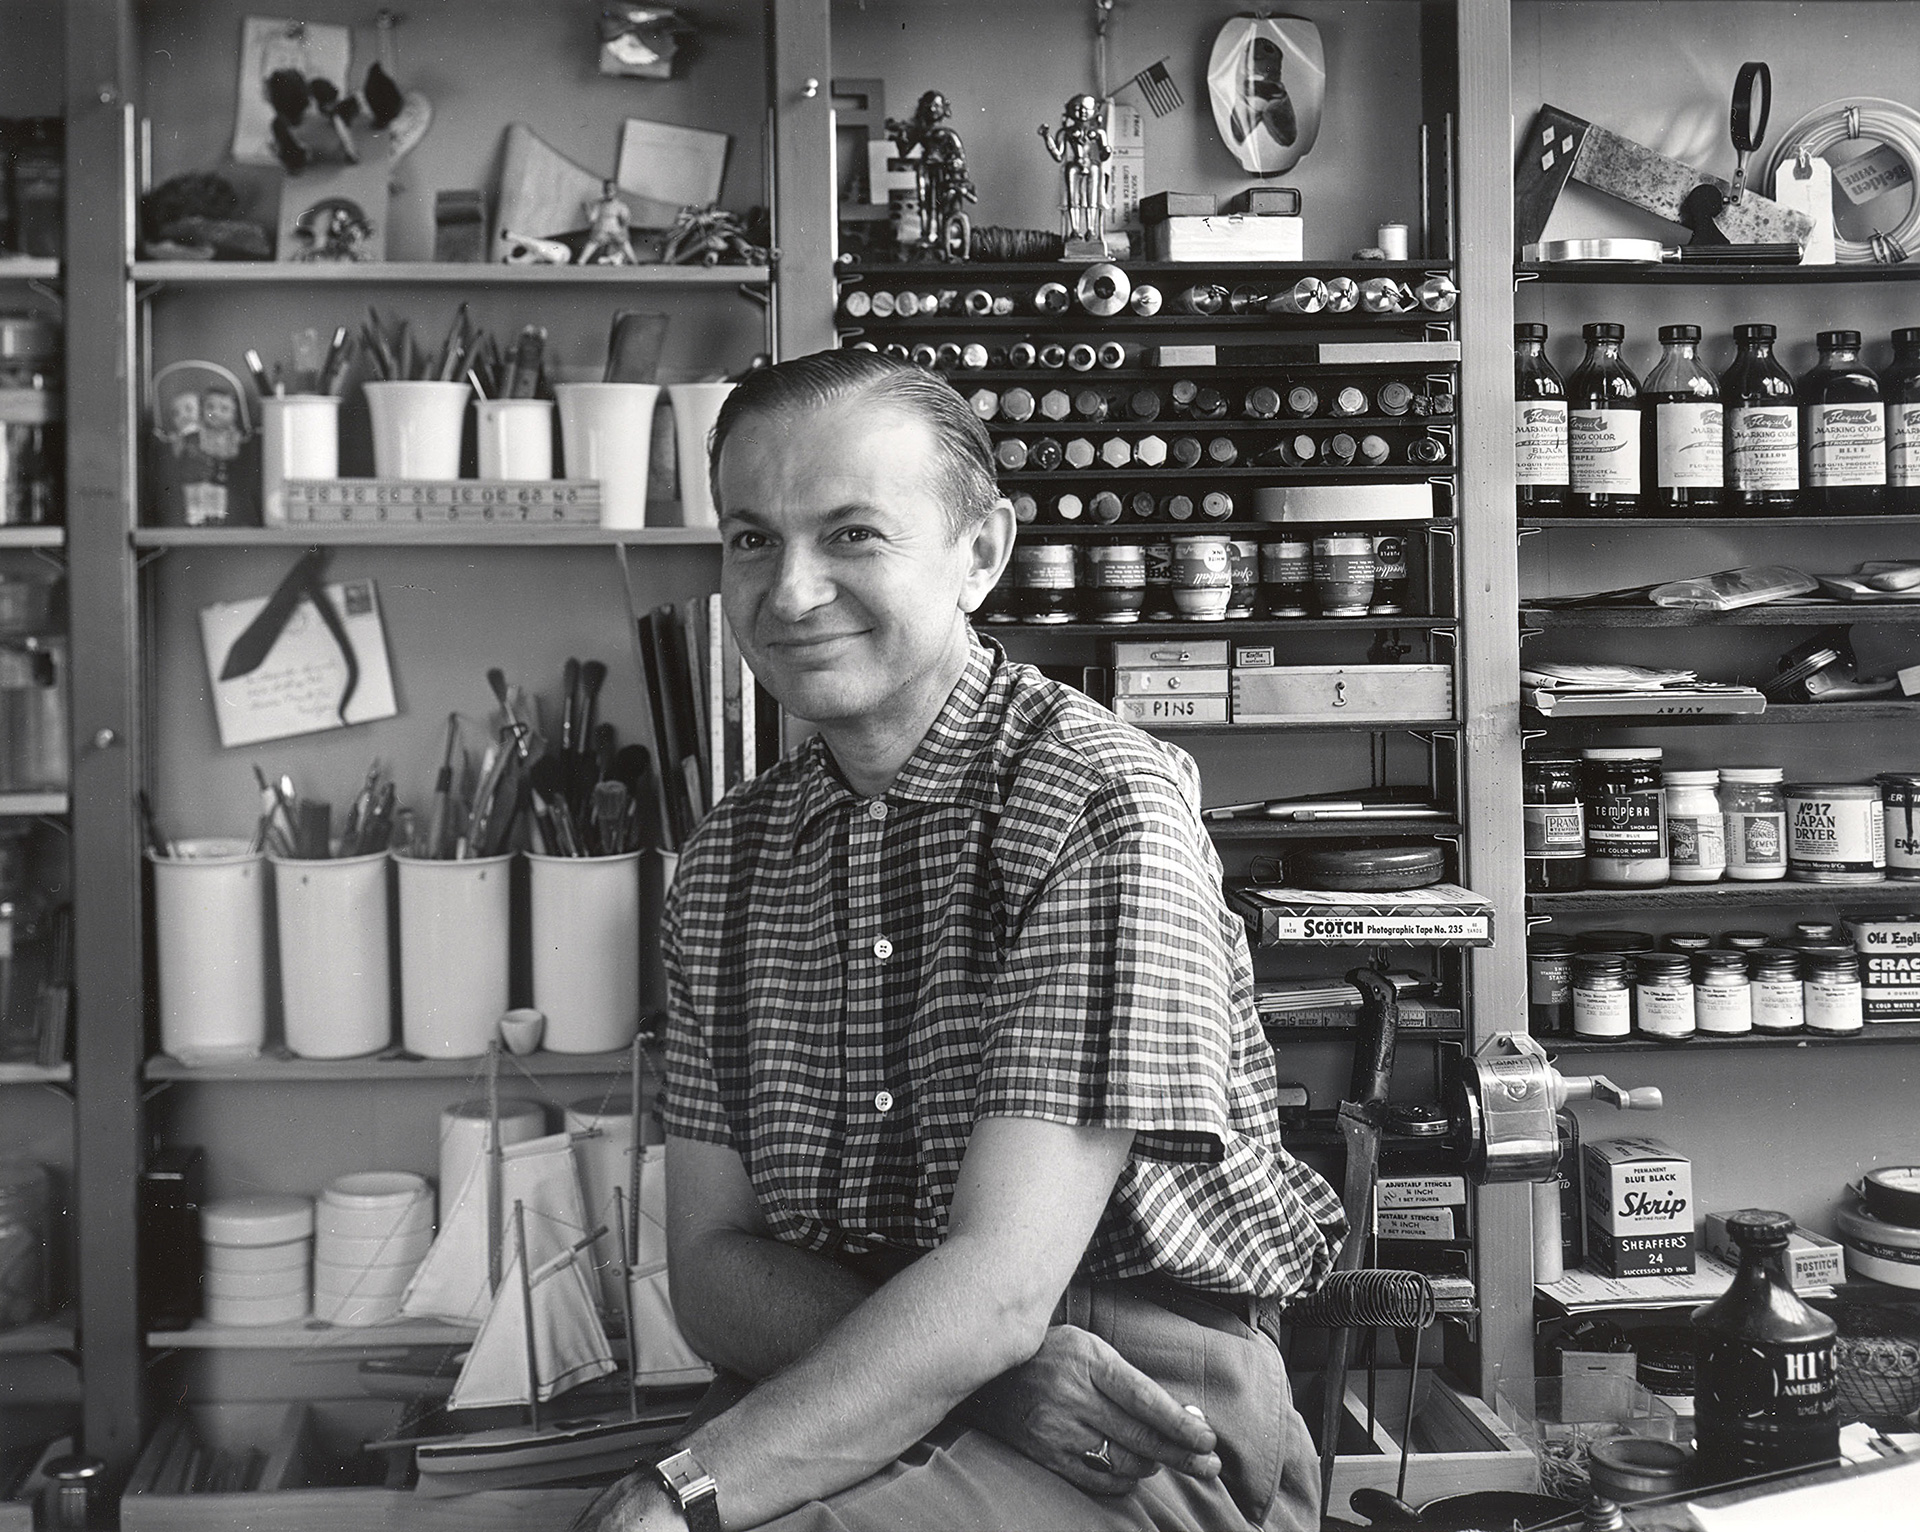 Alexander Girard, in his studio in the early 1950s | Alexander Girard: A Designer's Universe | Alexander Girard | STIRworld